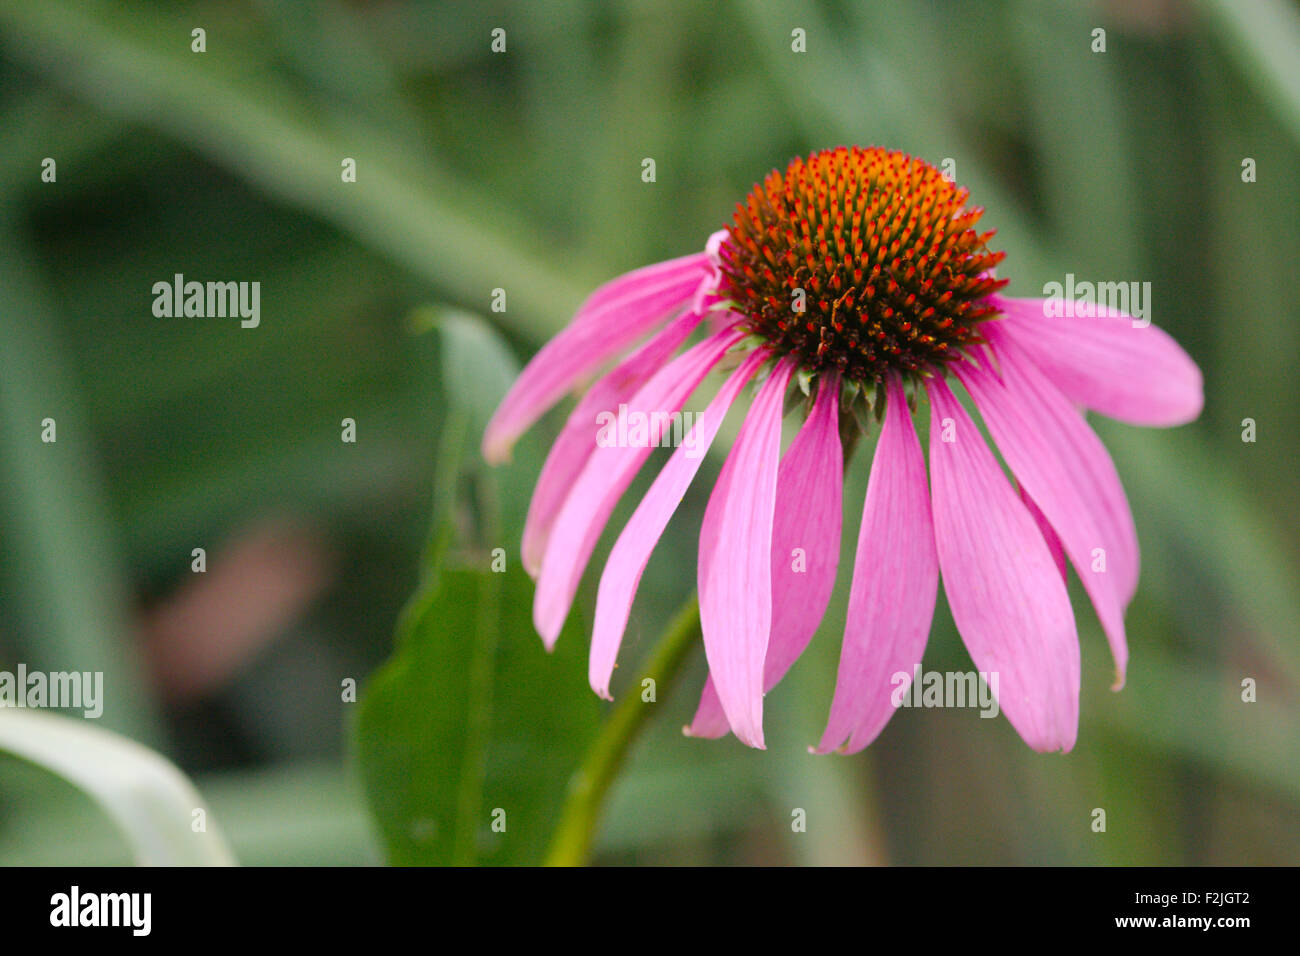 Lone, singular, pale purple coneflower, Echinacea pallida, close-up against a dark blurred background - Stock Image